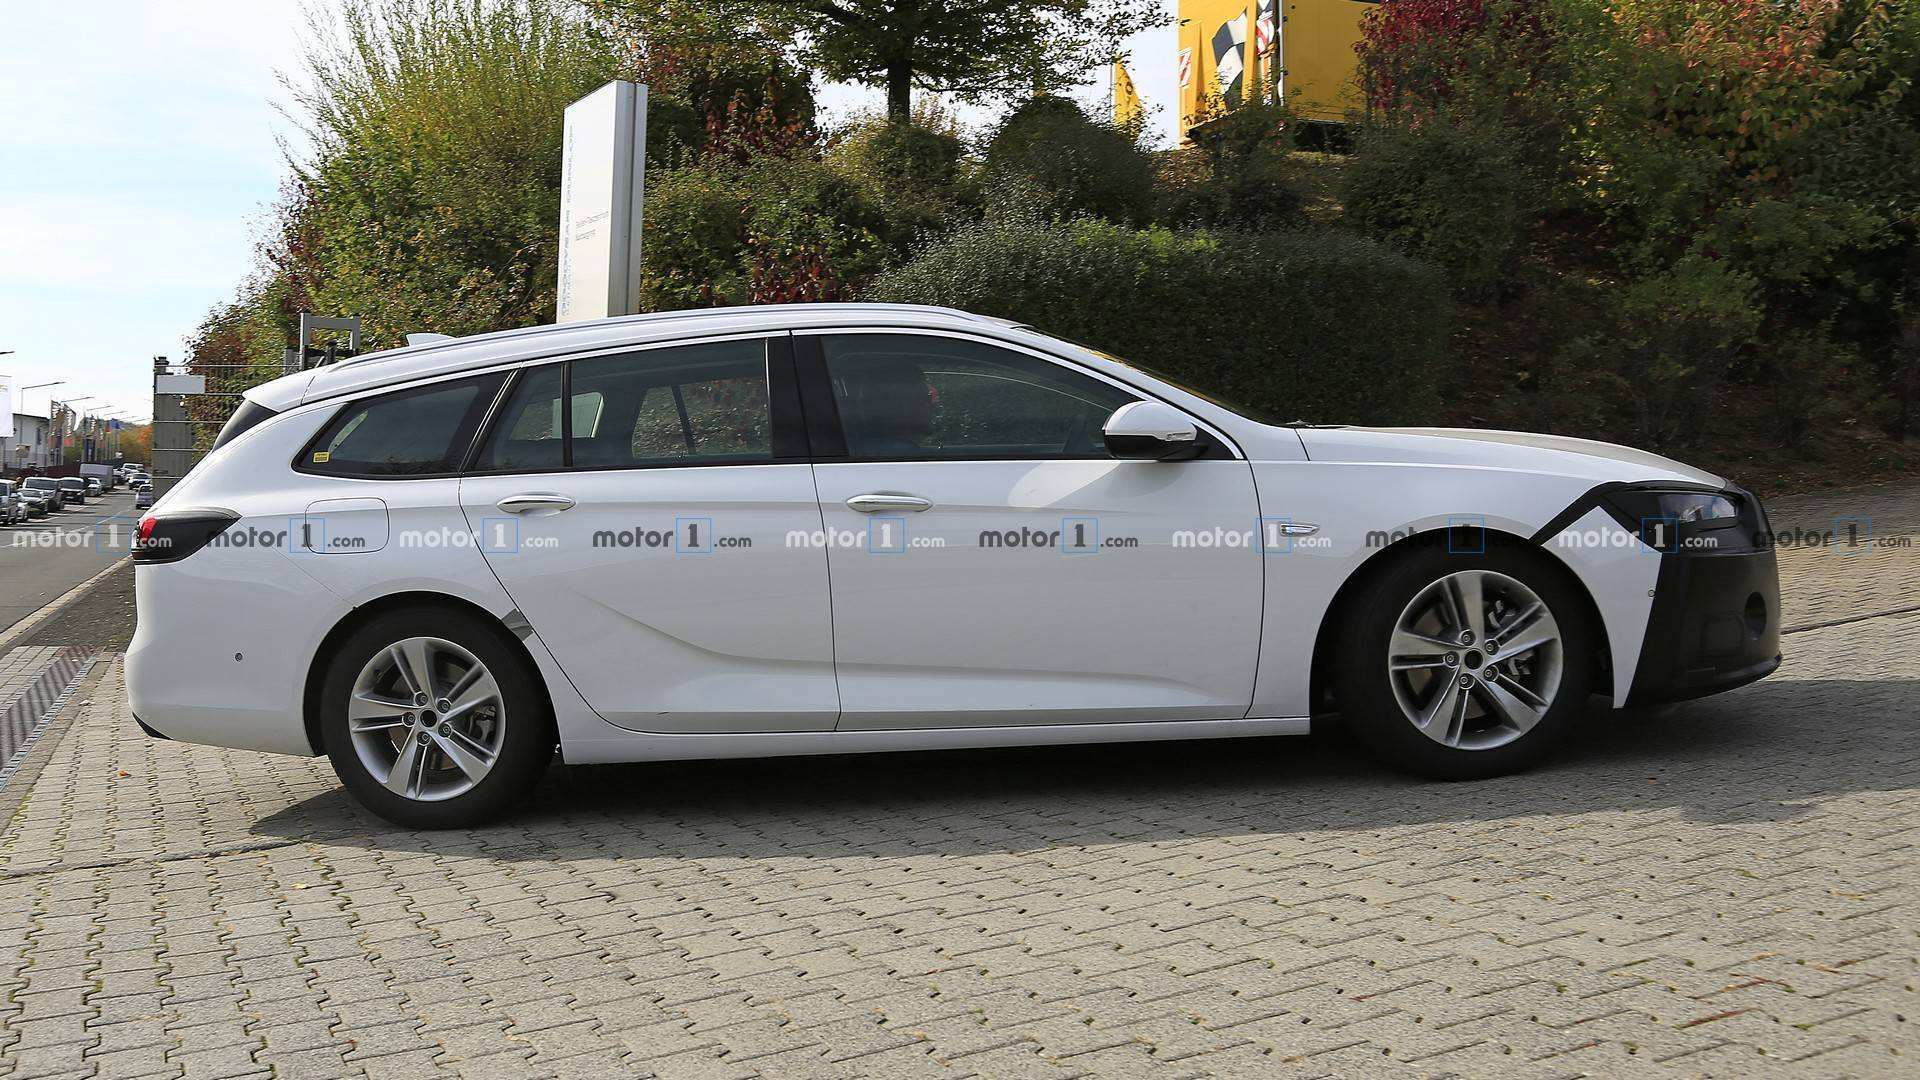 87 New Opel Insignia Facelift 2020 Specs and Review for Opel Insignia Facelift 2020